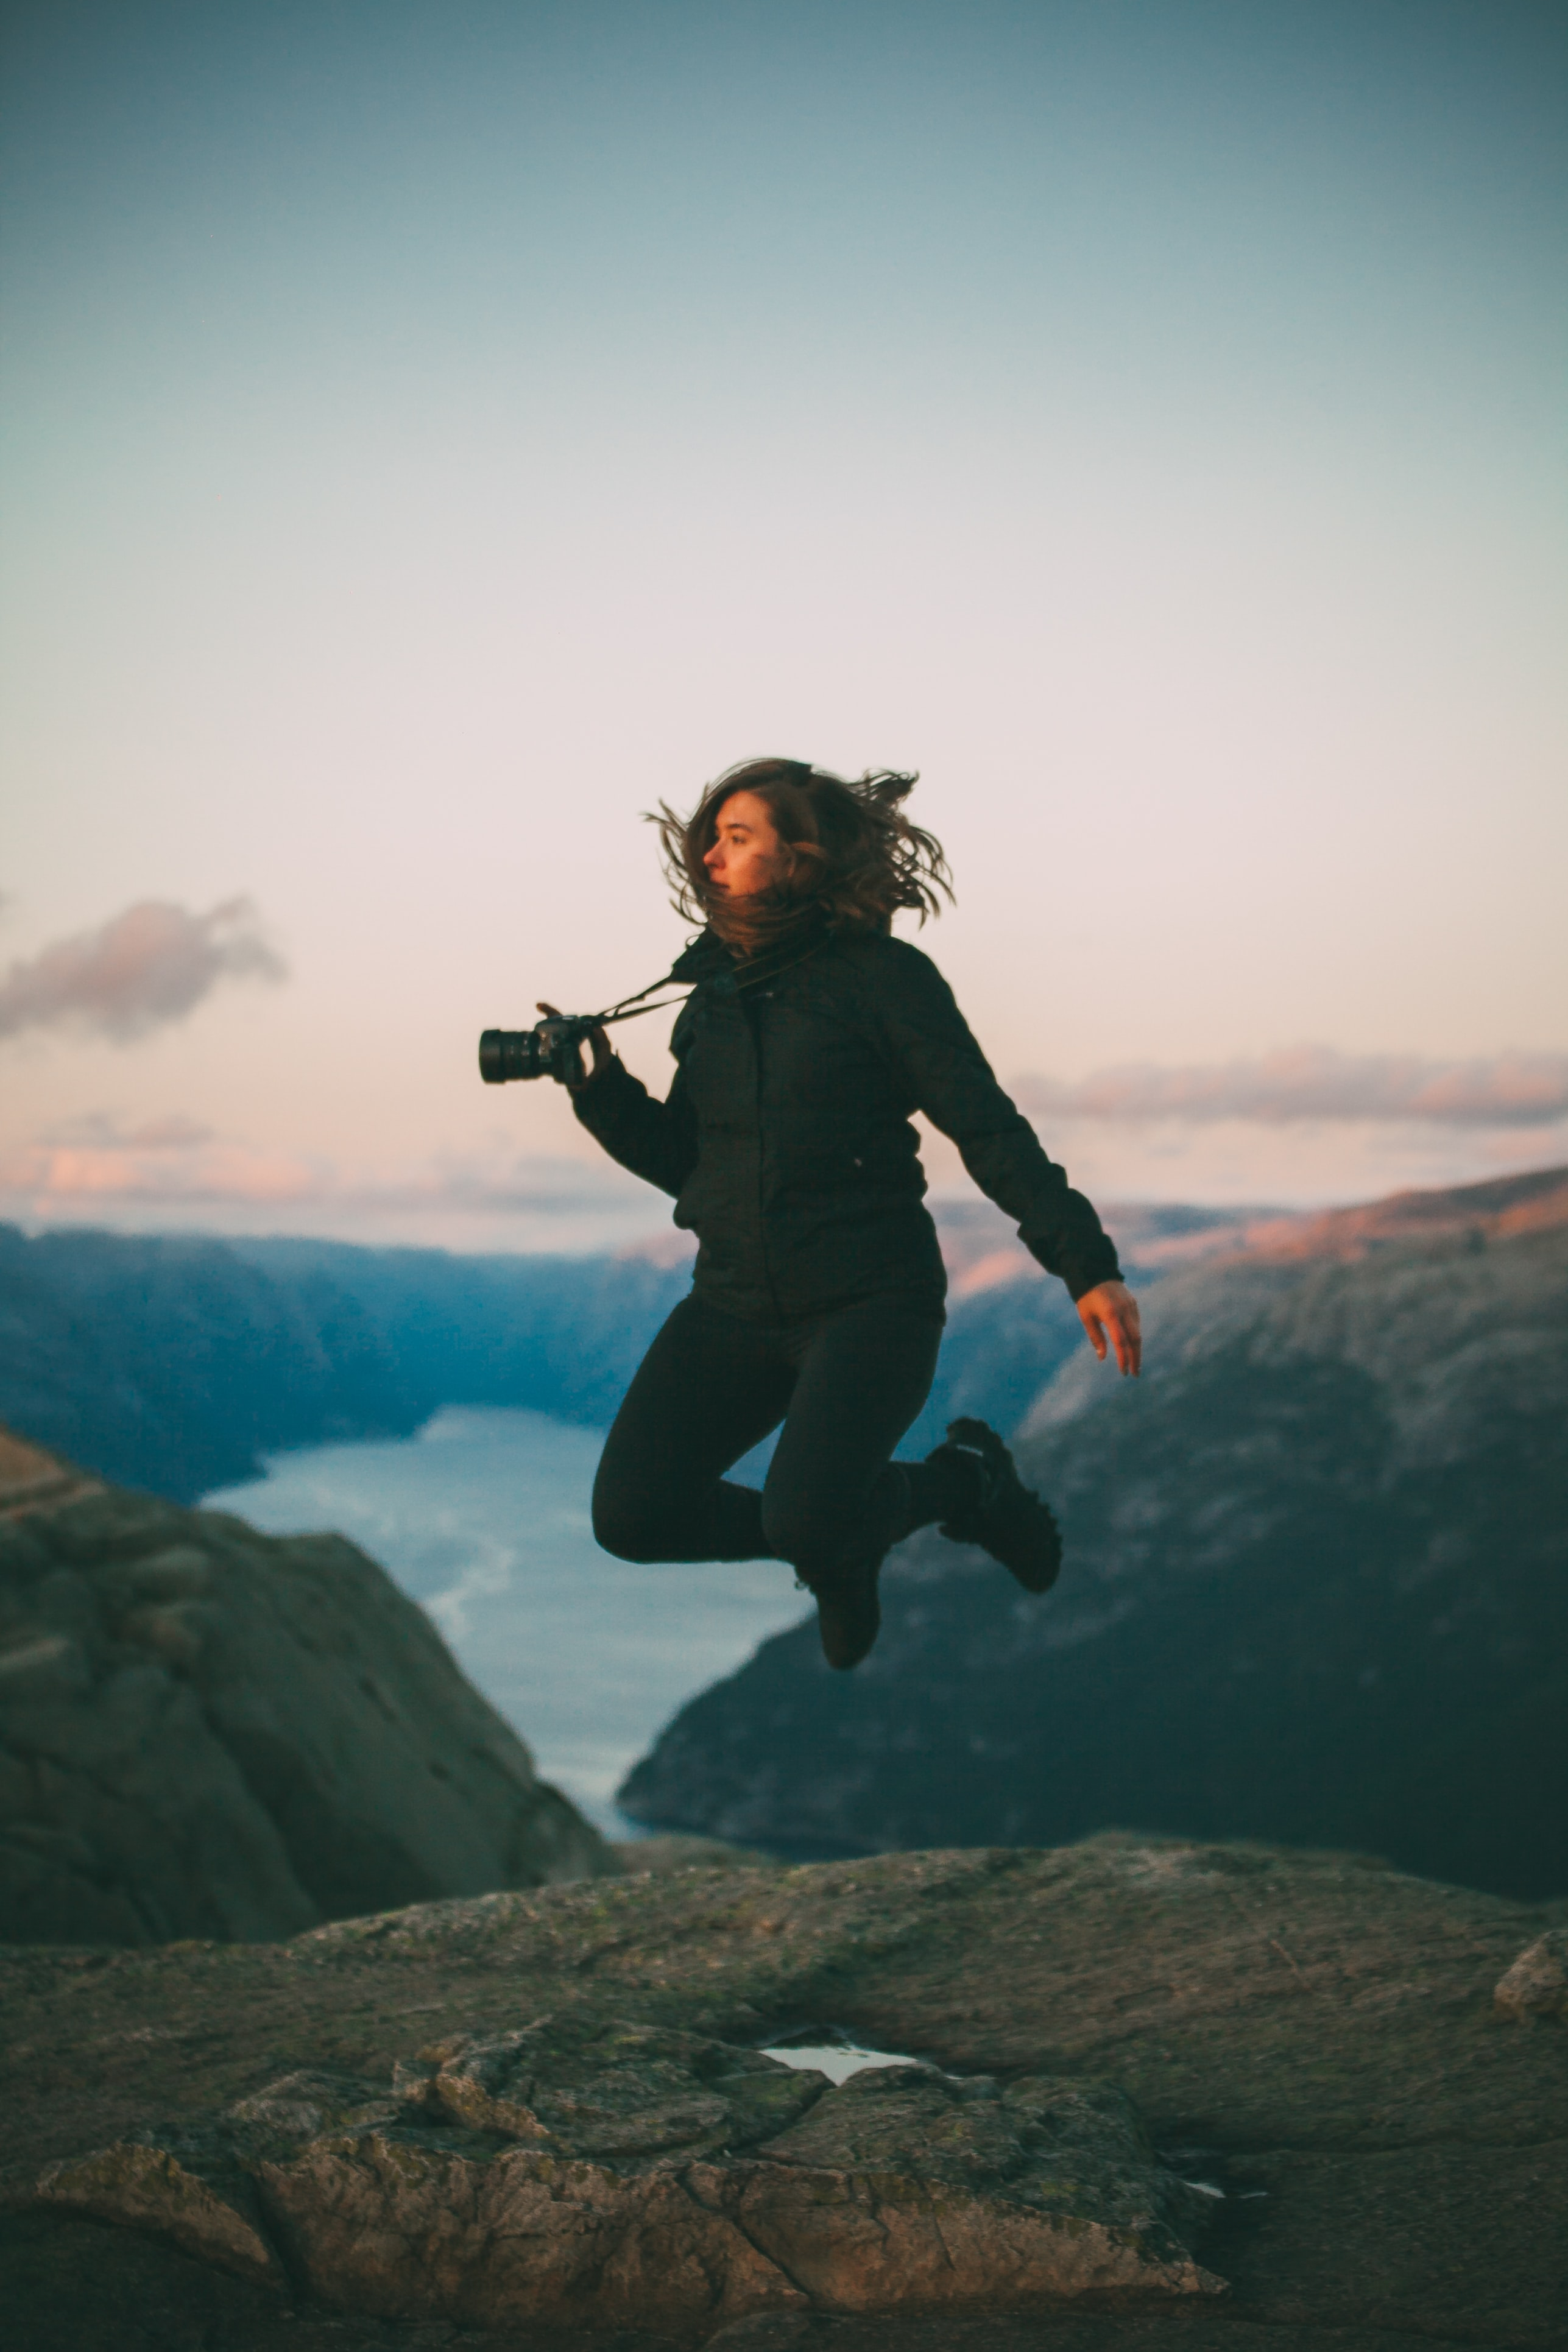 selective focus photo of woman jumping holding camera